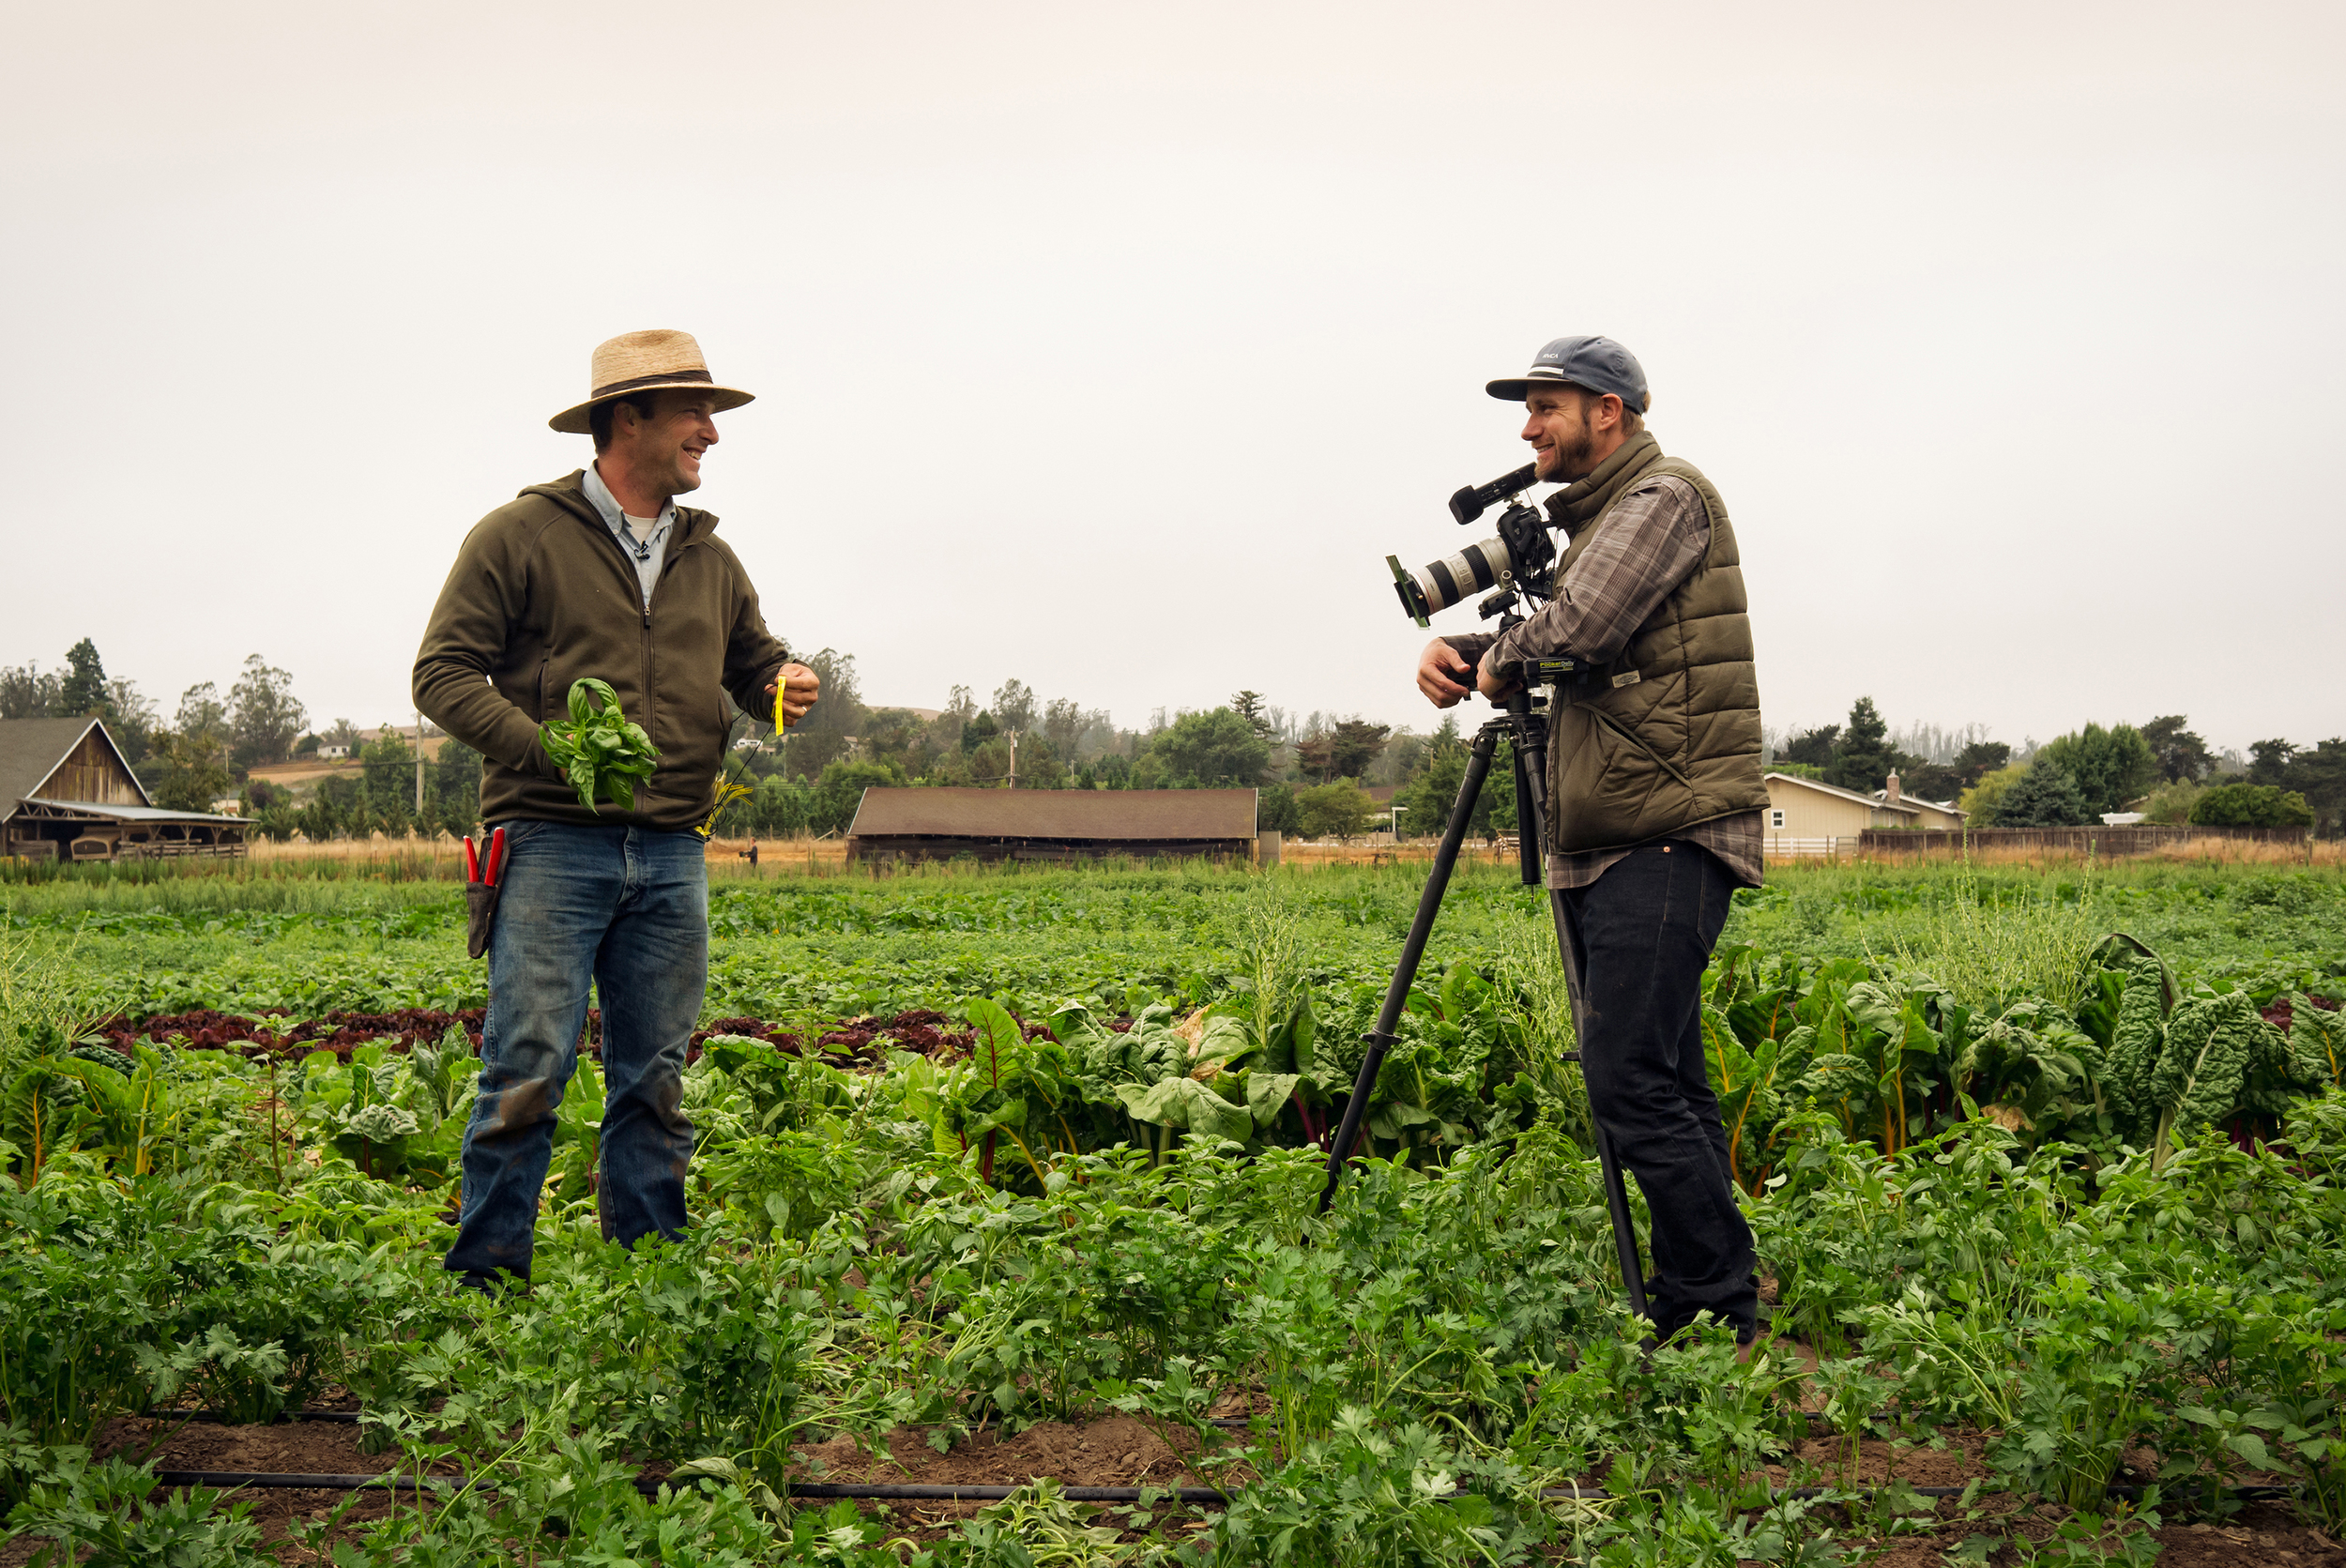 "Farmer Jesse Pizzitola of First Light Farm (left) and Filmmaker Jayson Carpenter.  Photo by Frank              Gaglione.       Normal   0           false   false   false     EN-US   X-NONE   X-NONE                                                                                                                                                                                                                                                                                                                                                                           /* Style Definitions */  table.MsoNormalTable 	{mso-style-name:""Table Normal""; 	mso-tstyle-rowband-size:0; 	mso-tstyle-colband-size:0; 	mso-style-noshow:yes; 	mso-style-priority:99; 	mso-style-parent:""""; 	mso-padding-alt:0in 5.4pt 0in 5.4pt; 	mso-para-margin-top:0in; 	mso-para-margin-right:0in; 	mso-para-margin-bottom:10.0pt; 	mso-para-margin-left:0in; 	line-height:115%; 	mso-pagination:widow-orphan; 	font-size:11.0pt; 	font-family:""Calibri"",""sans-serif""; 	mso-ascii-font-family:Calibri; 	mso-ascii-theme-font:minor-latin; 	mso-hansi-font-family:Calibri; 	mso-hansi-theme-font:minor-latin;}"